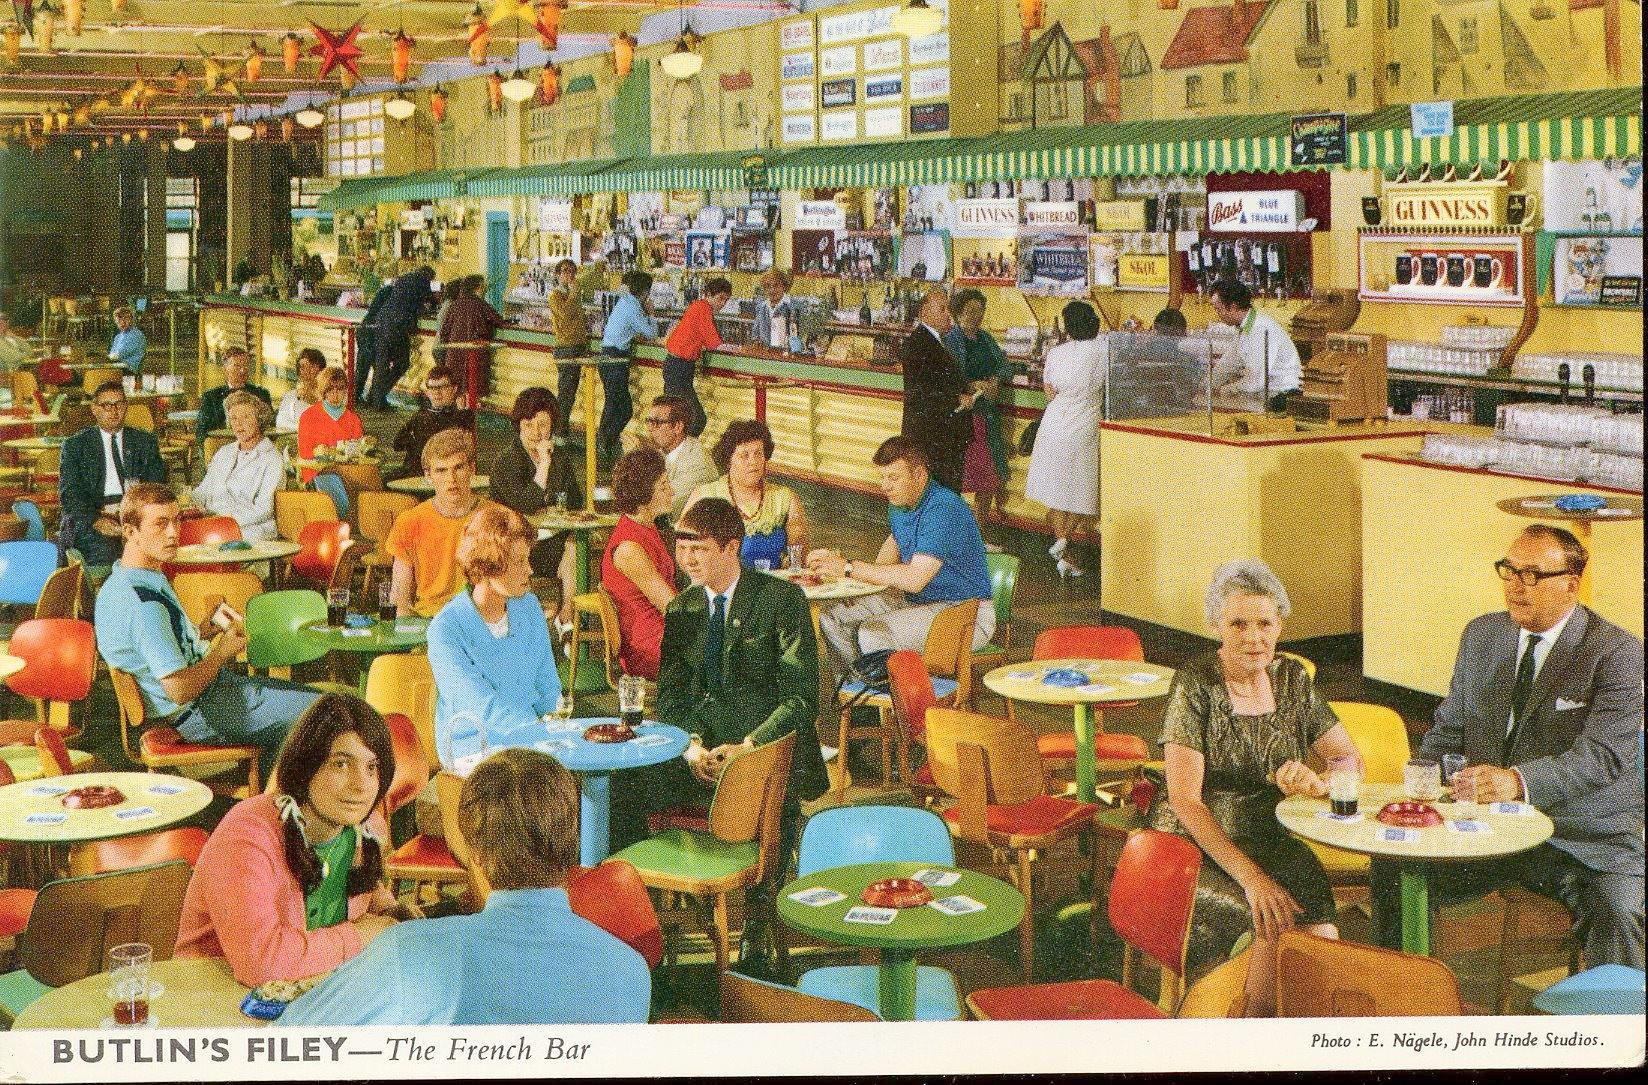 Butlin's at Filey - The French Bar